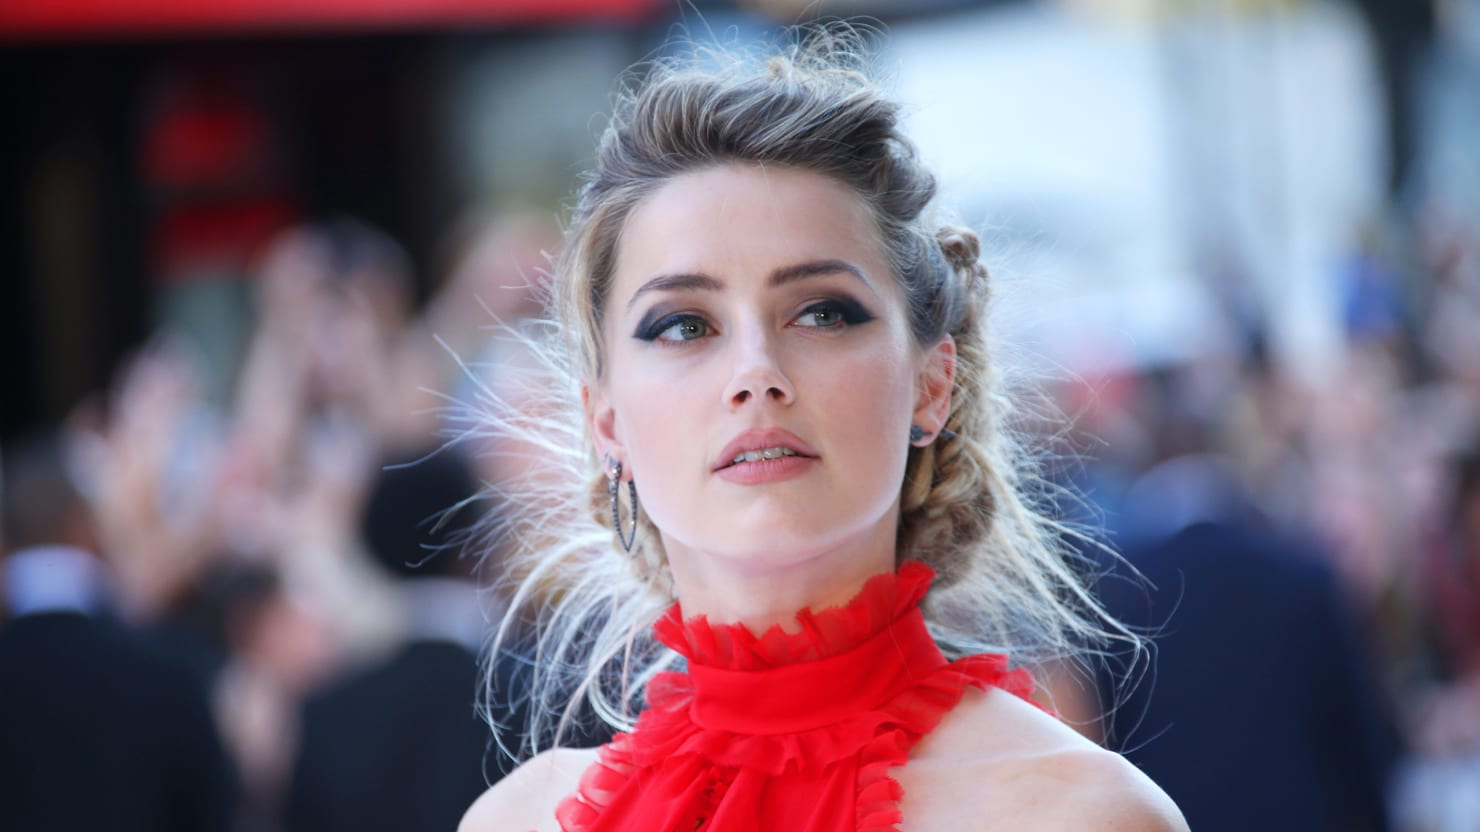 amber heard forced to defend herself against media s icky smear campaign